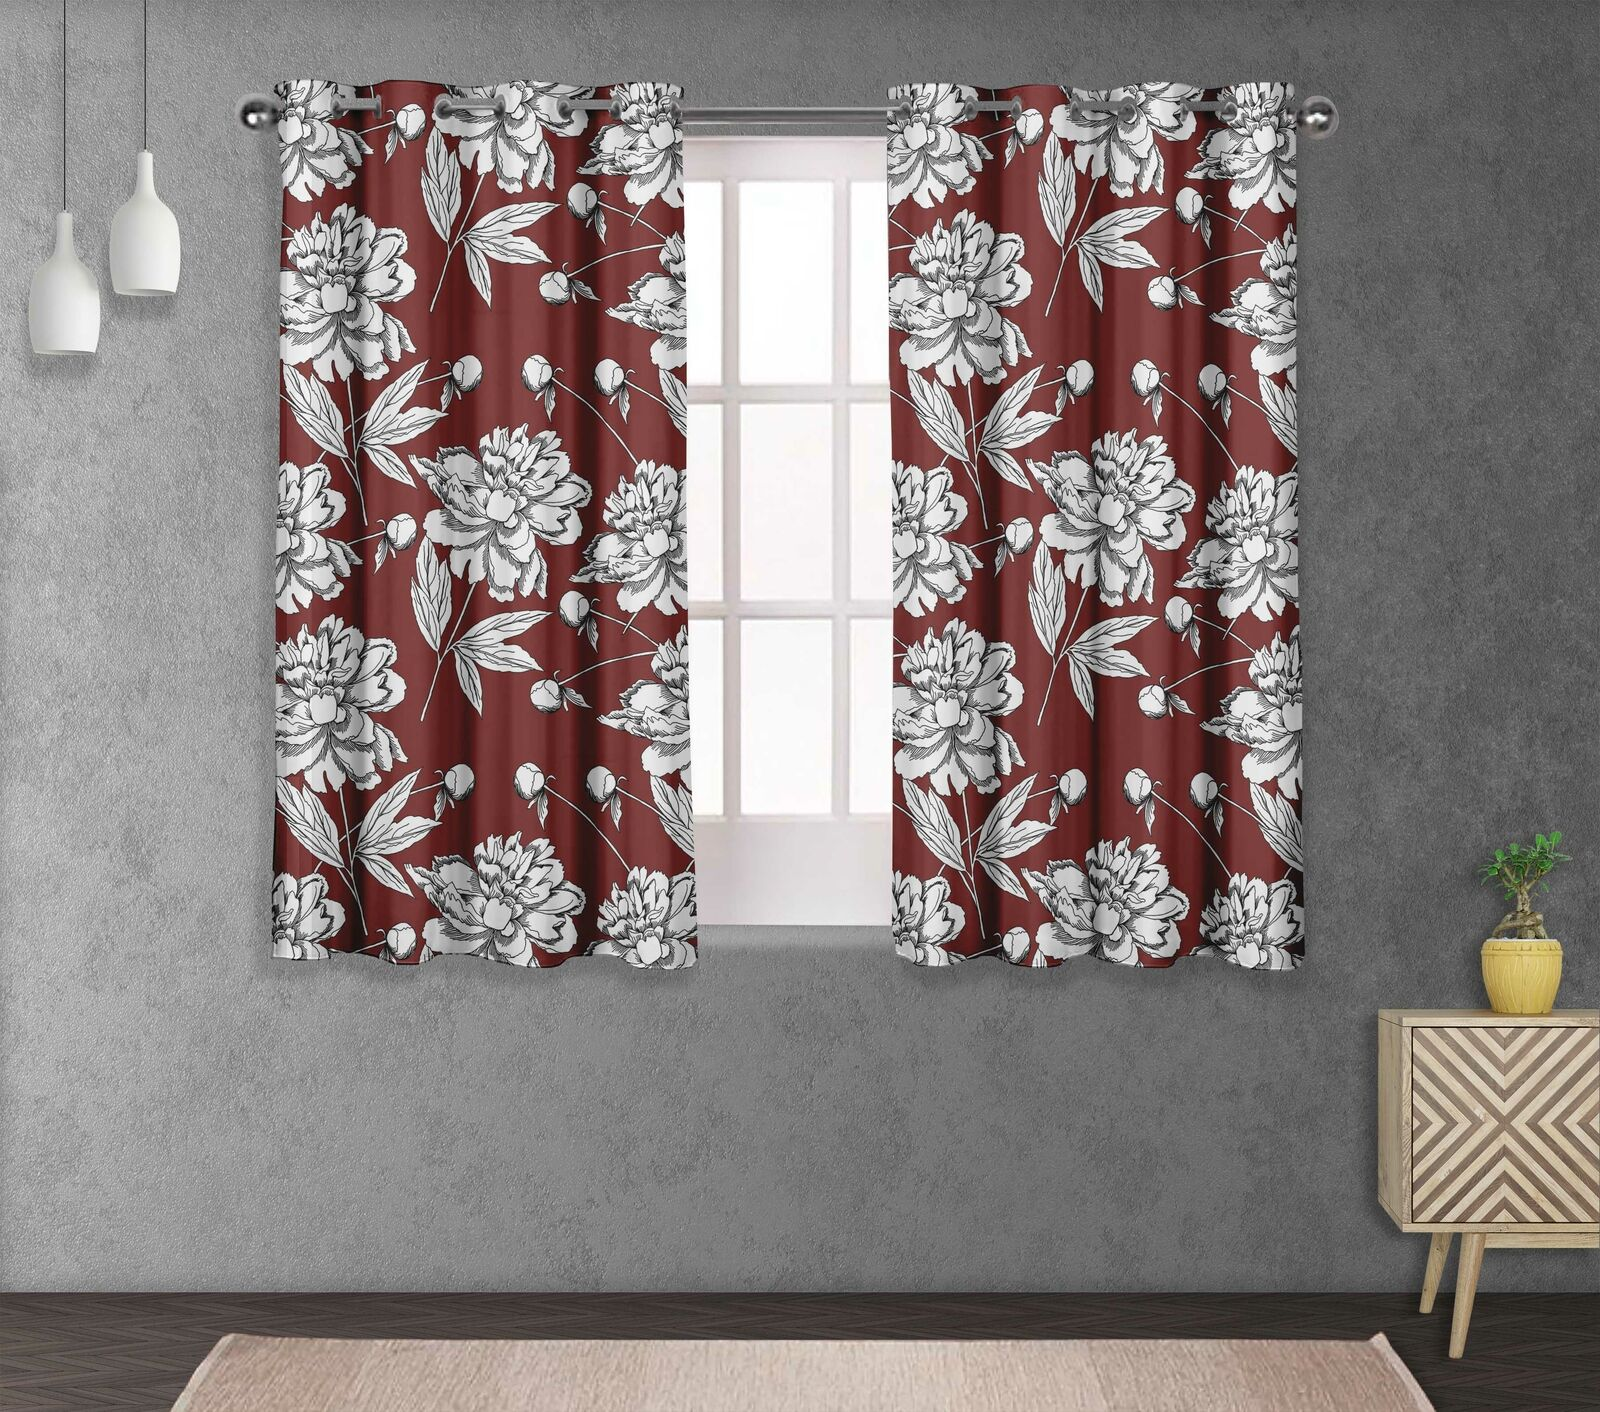 S4sassy Leaves & Carnation Double Panel Window Treatment Curtain -FL-15A